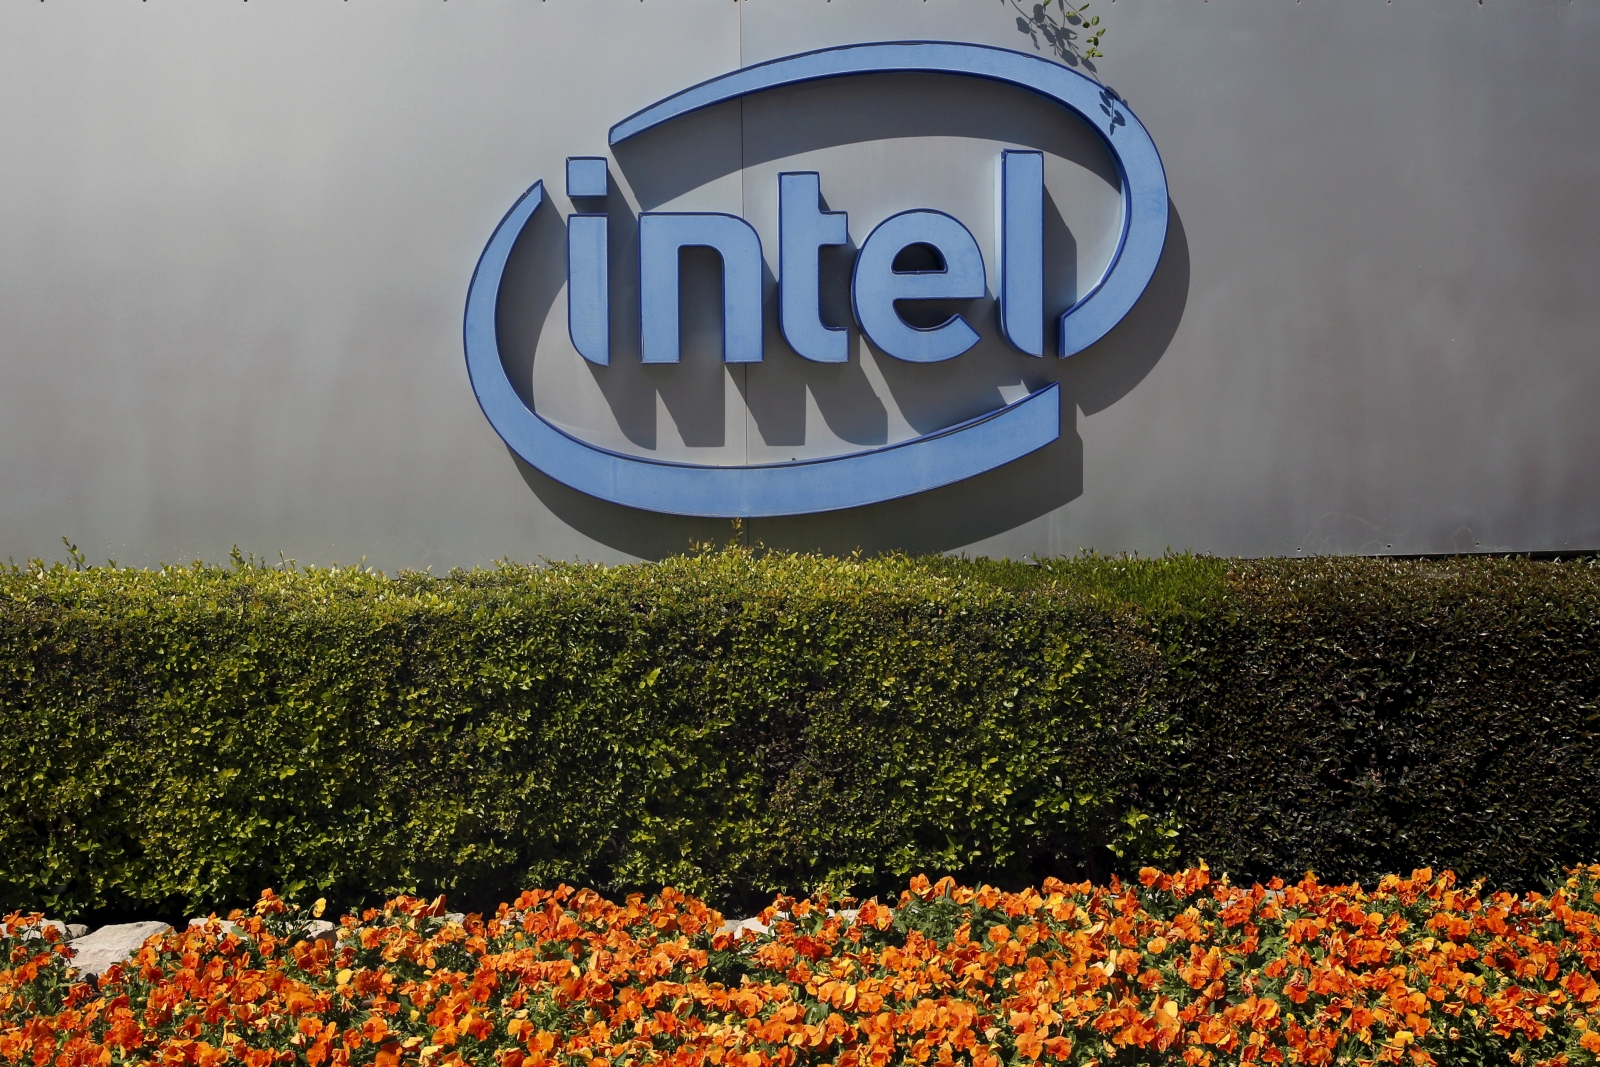 Intel to buy Mobileye for $14-$15 billion: Israeli media report